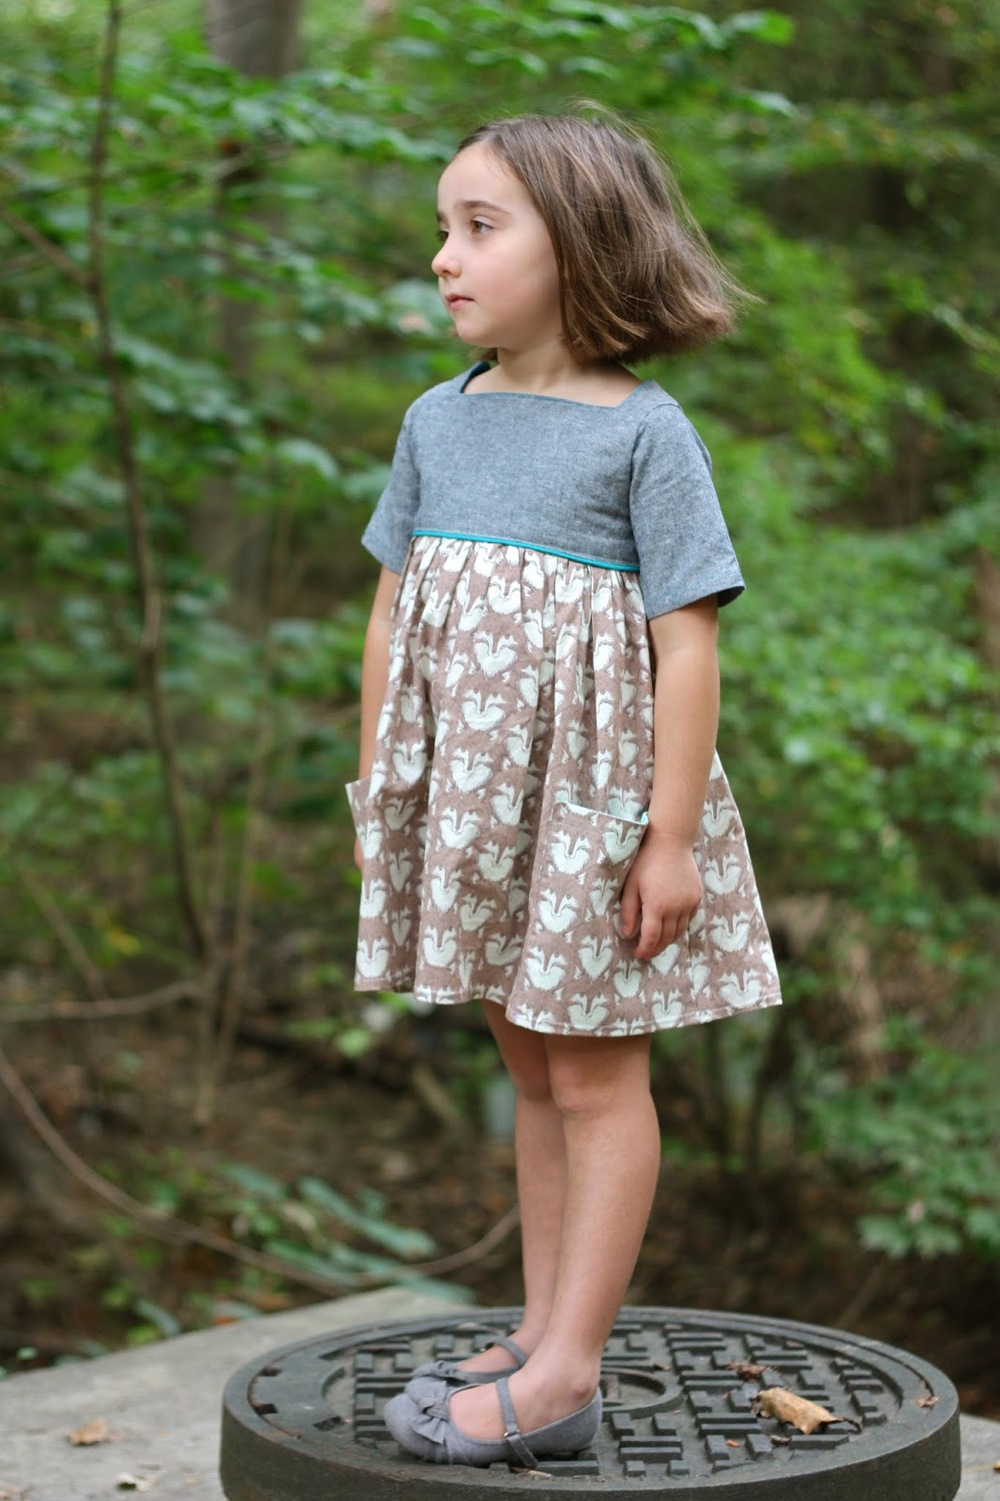 Sally Dress Pattern by Very Shannon sewn by Buzzmills